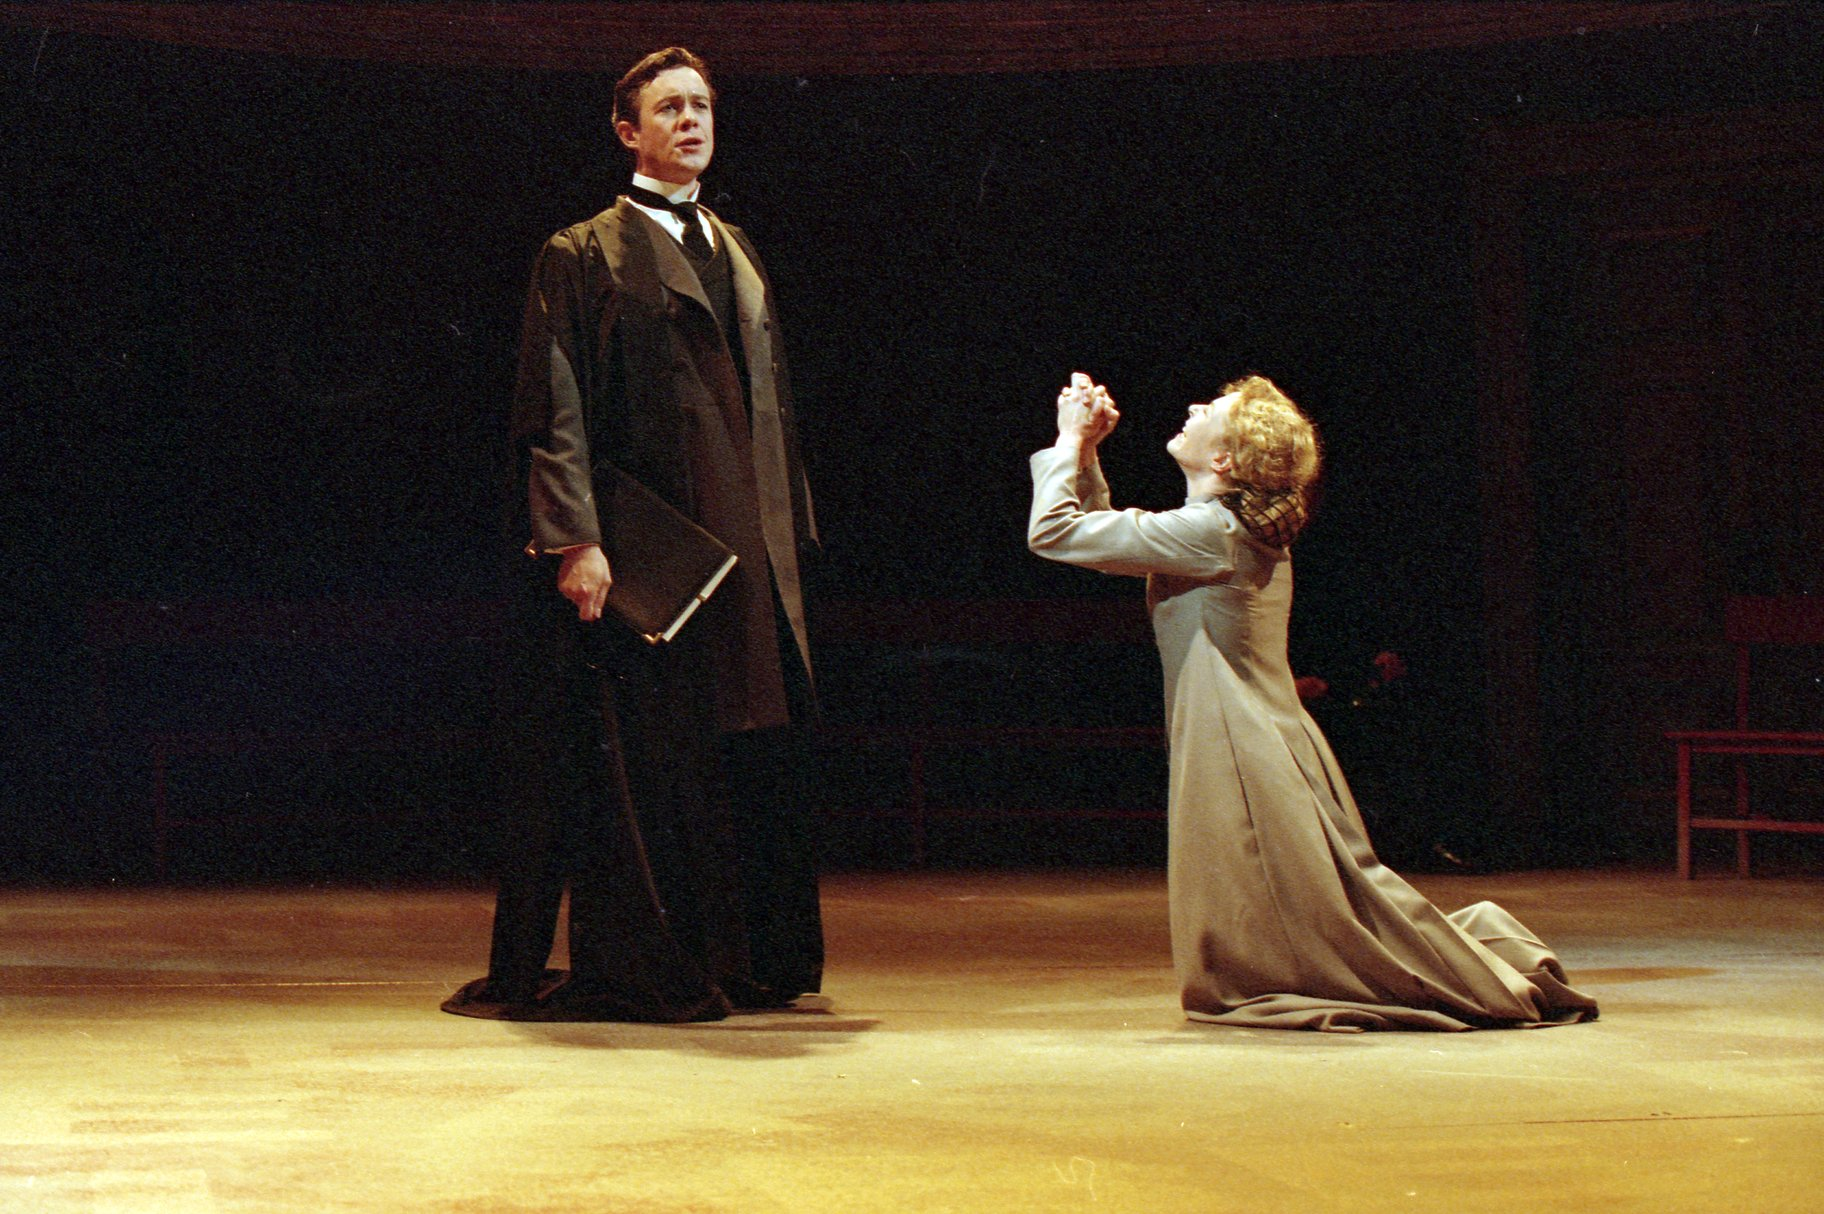 A woman pleads on her knees to a man in black scholar's robes.